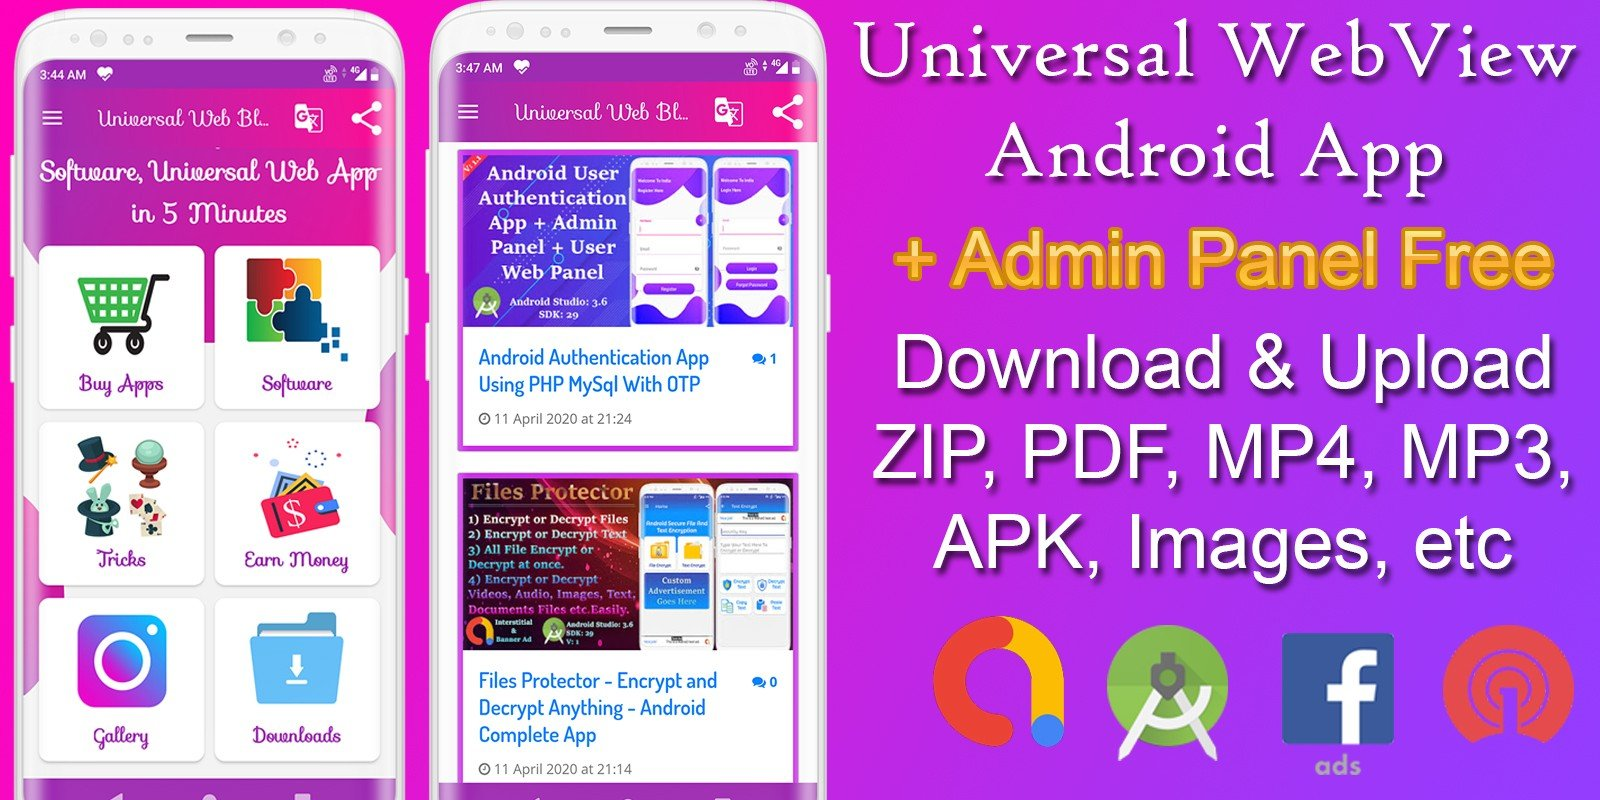 Universal WebView - 2 App Bundle With Admin Panel